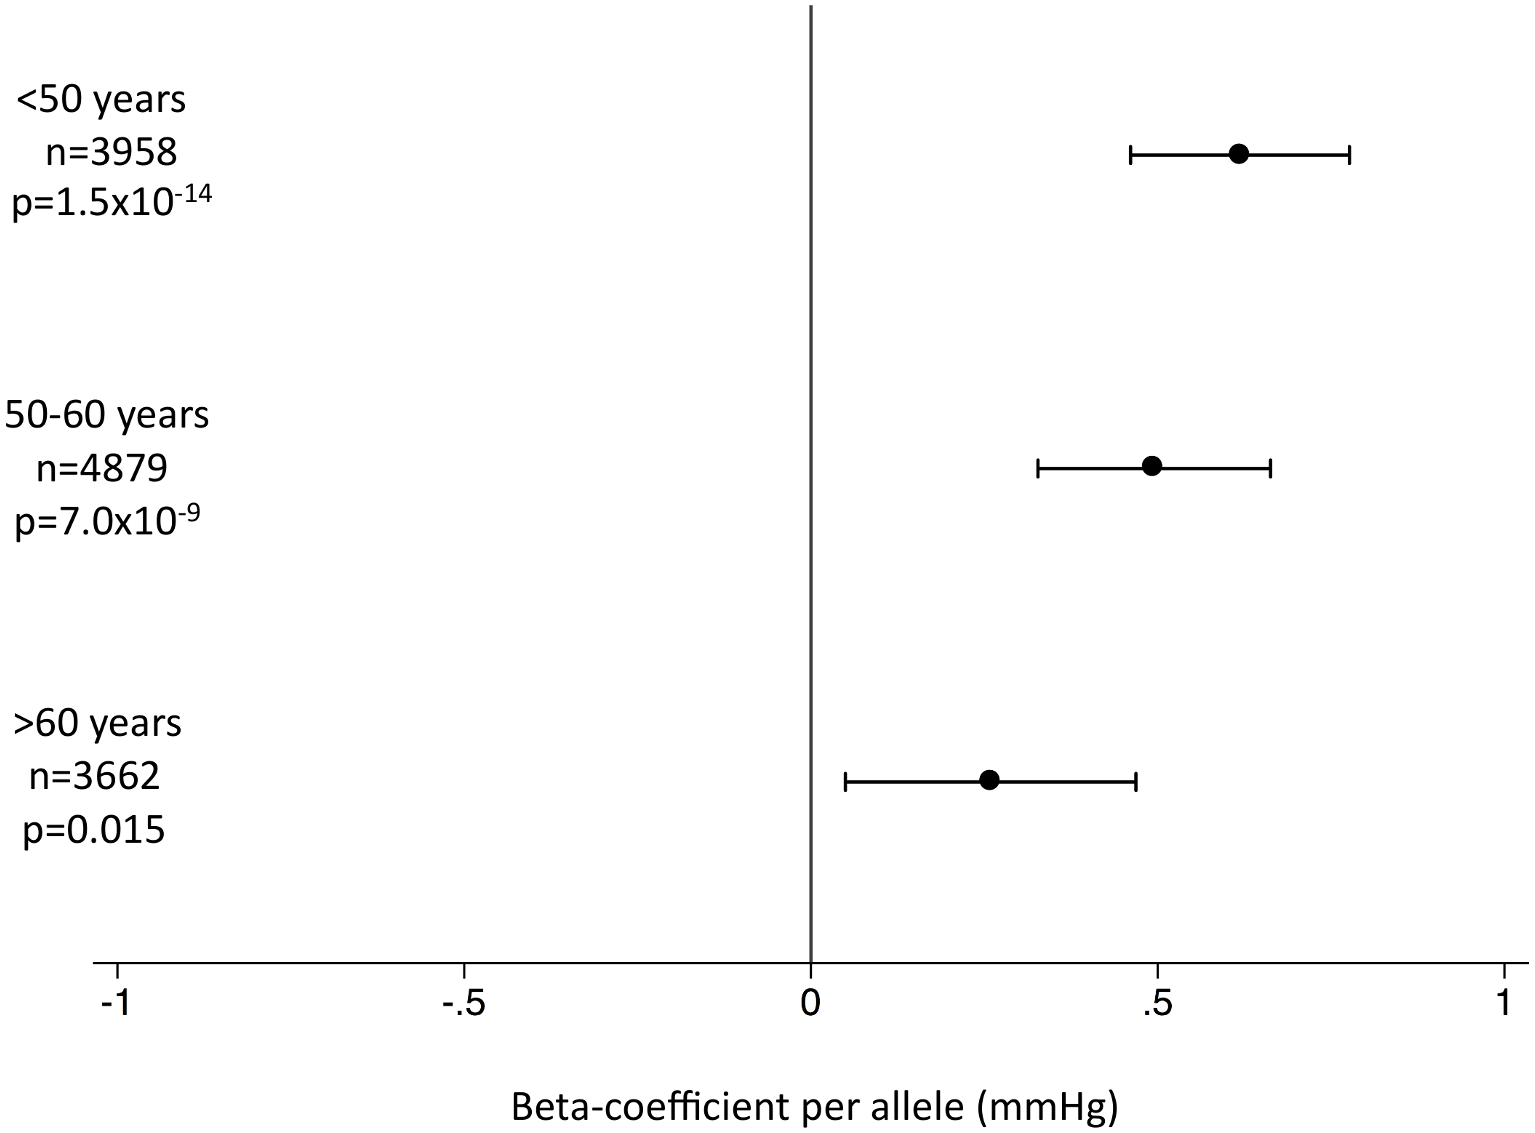 Association of the systolic blood pressure genetic score with systolic blood pressure by age stratum in the EPIC-InterAct subcohort.